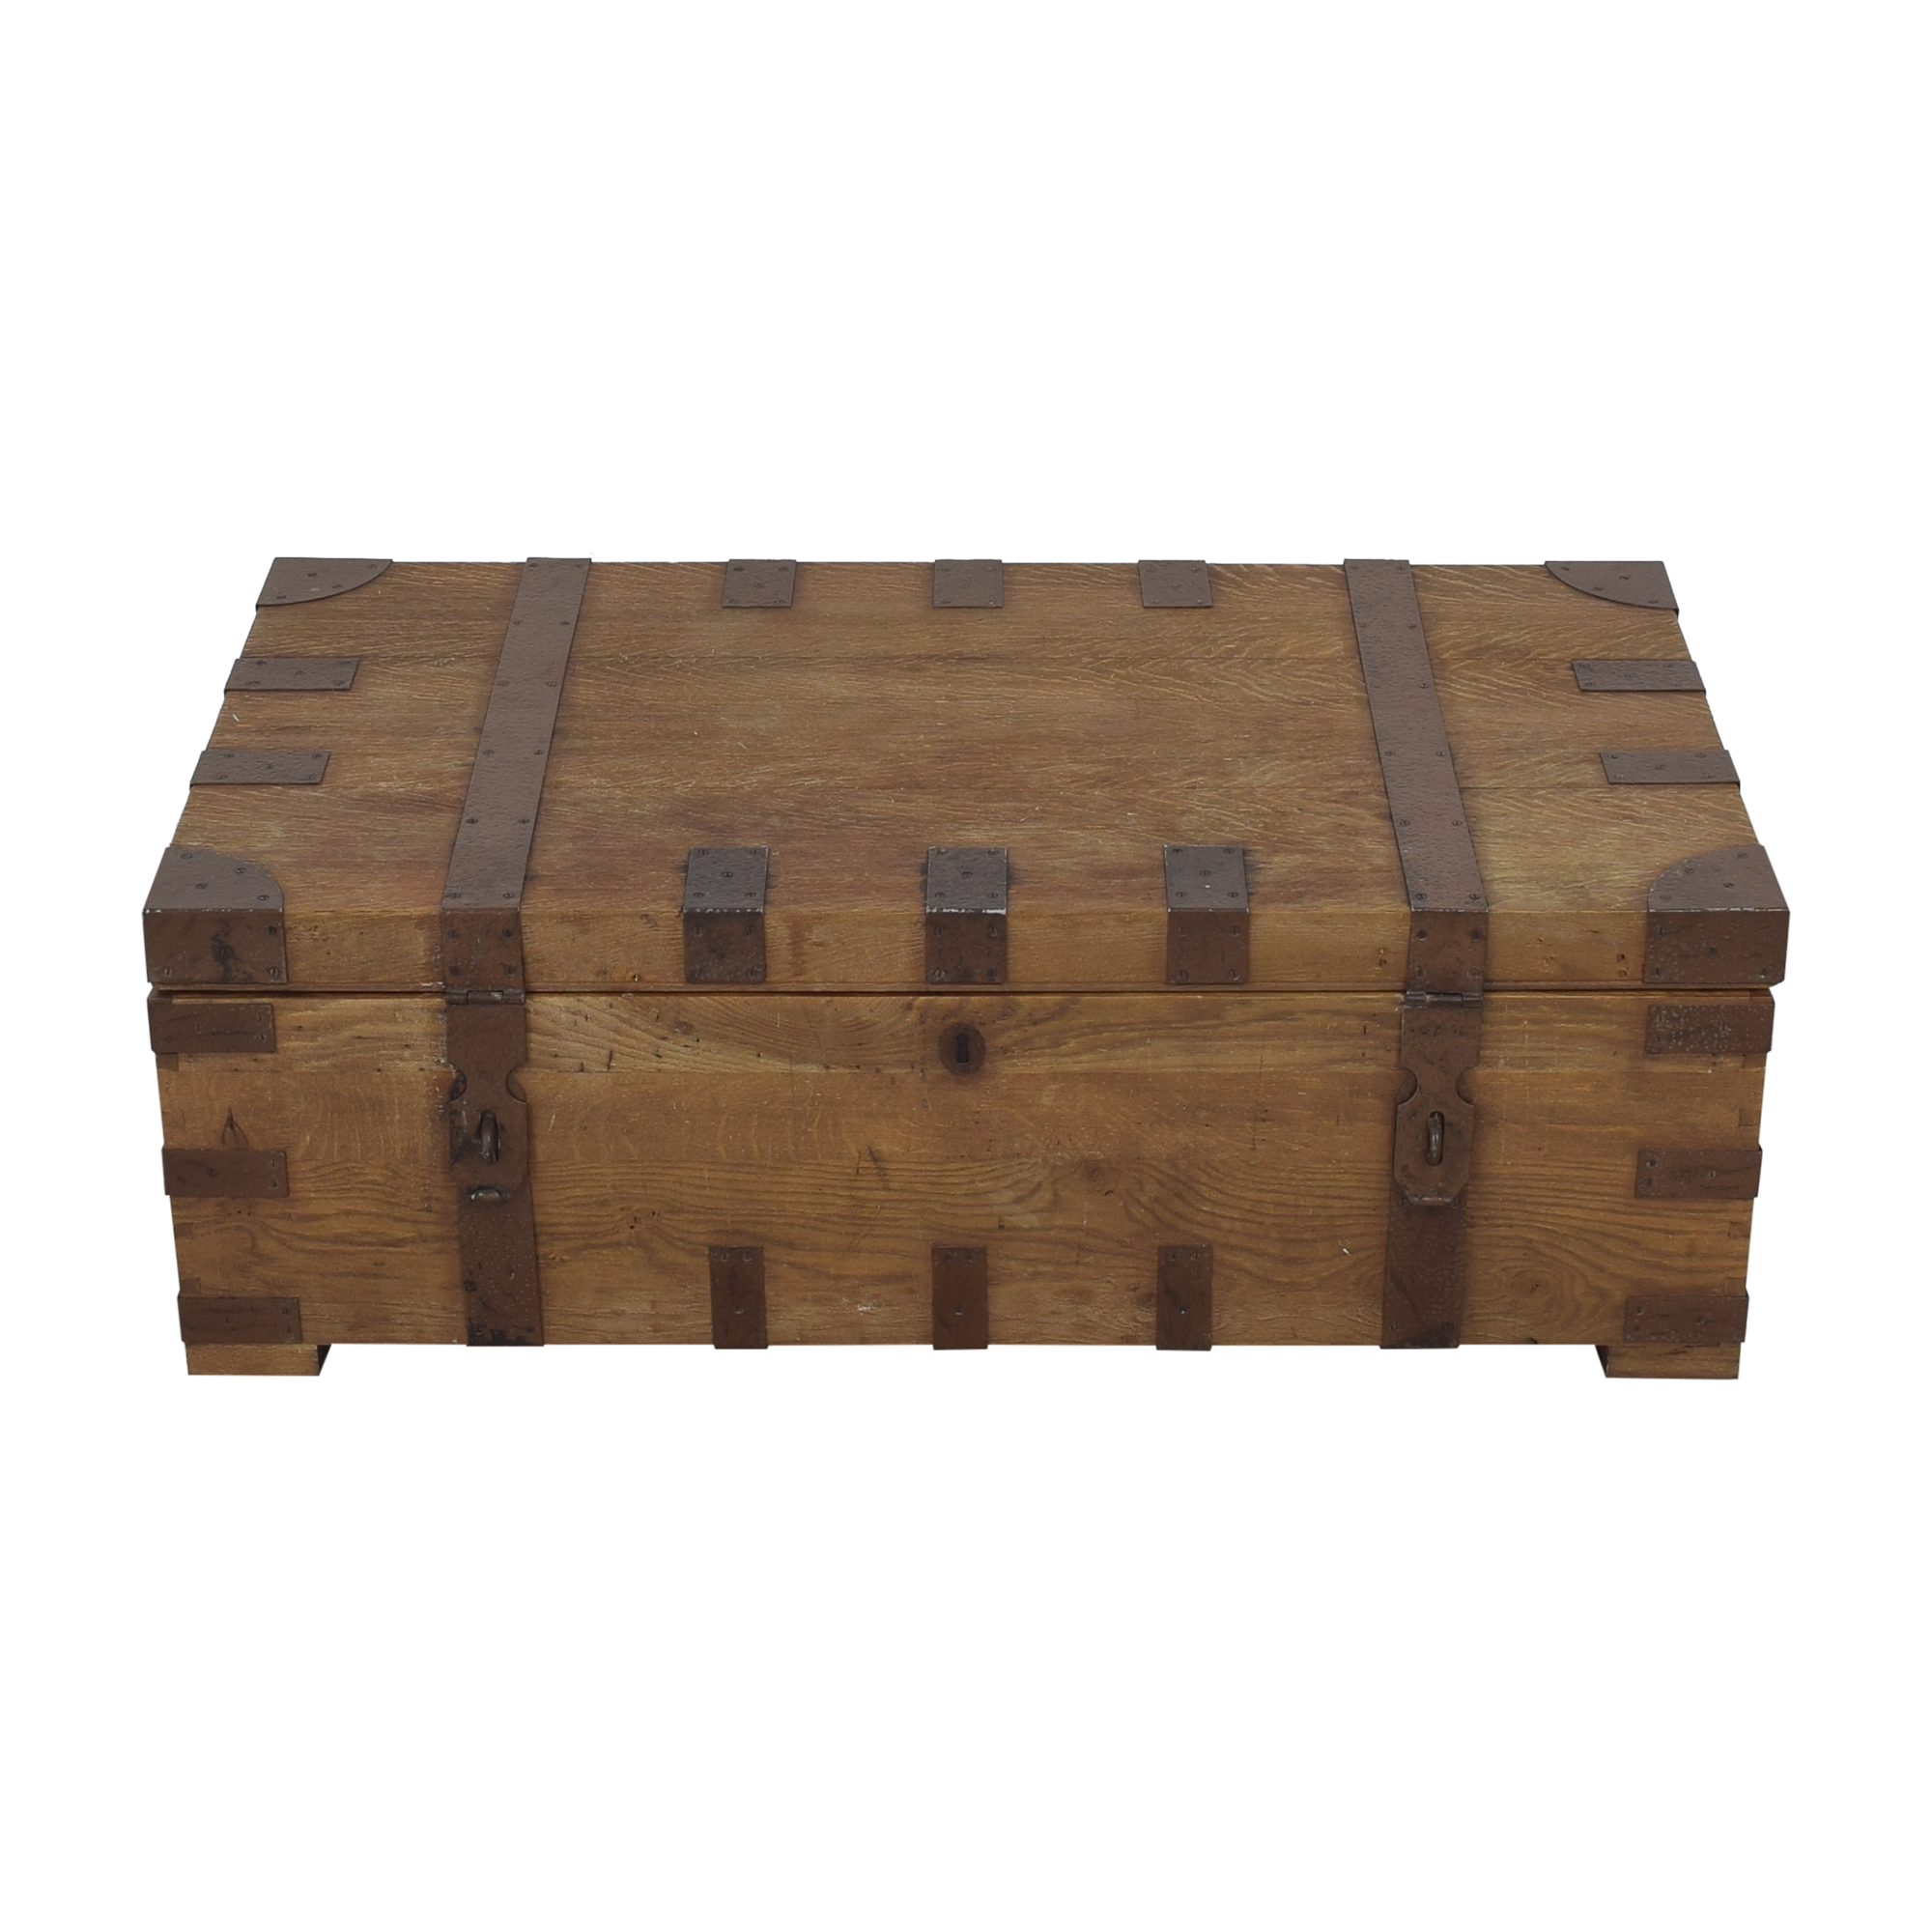 Restoration Hardware Restoration Hardware Heirloom Silver Chest Coffee Trunk for sale